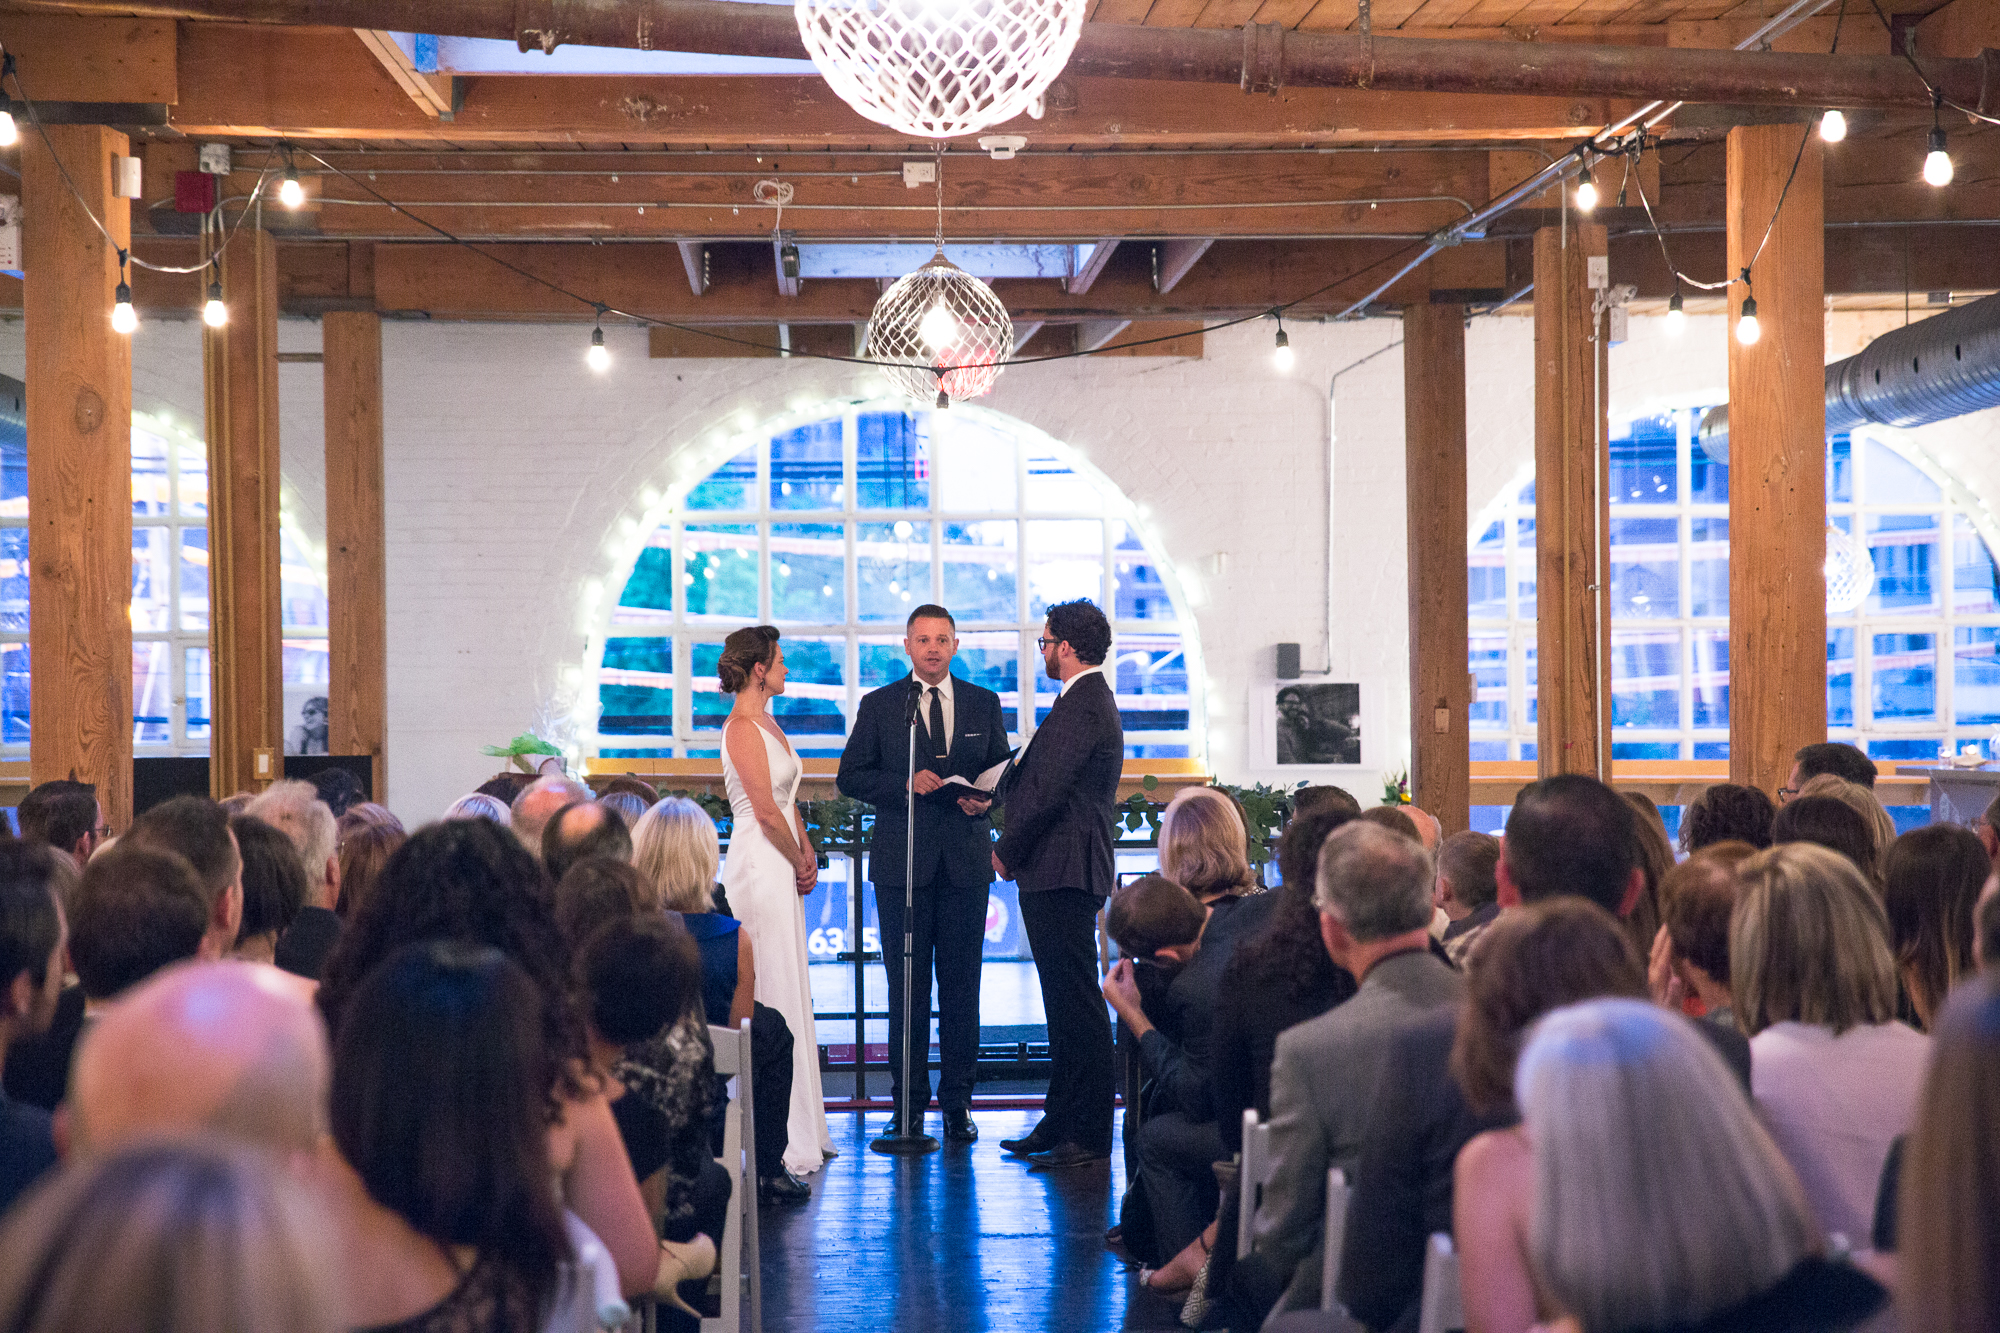 Leah-Chris-Ryan-Bolton-INLY-Events-Wedding-Toronto-Art-Gallery-0238.jpg